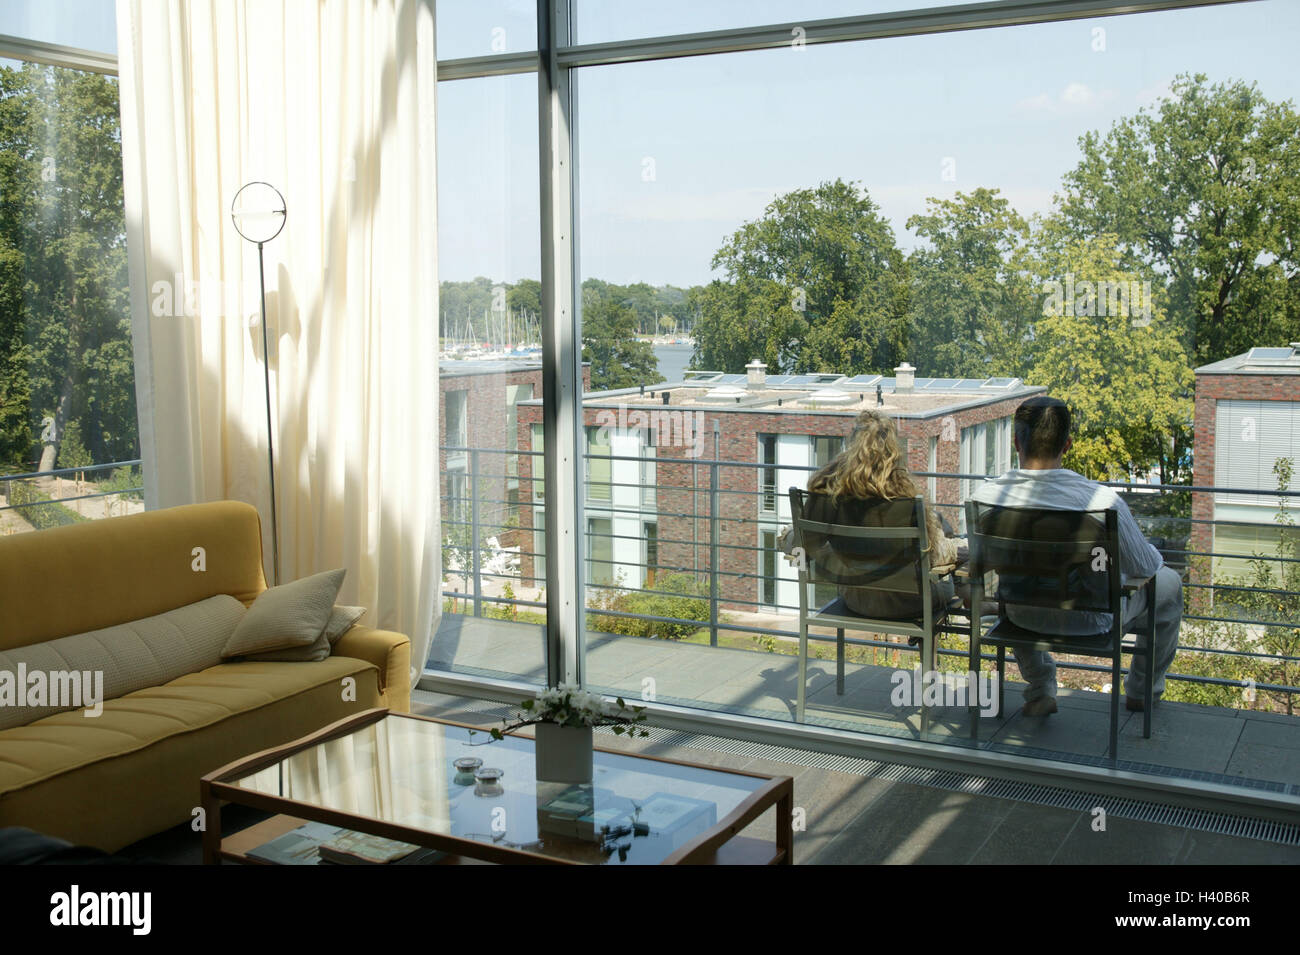 Flat, window front, couple, balcony, sit, enjoy back view, summer, residential complex, real estate, new building, - Stock Image